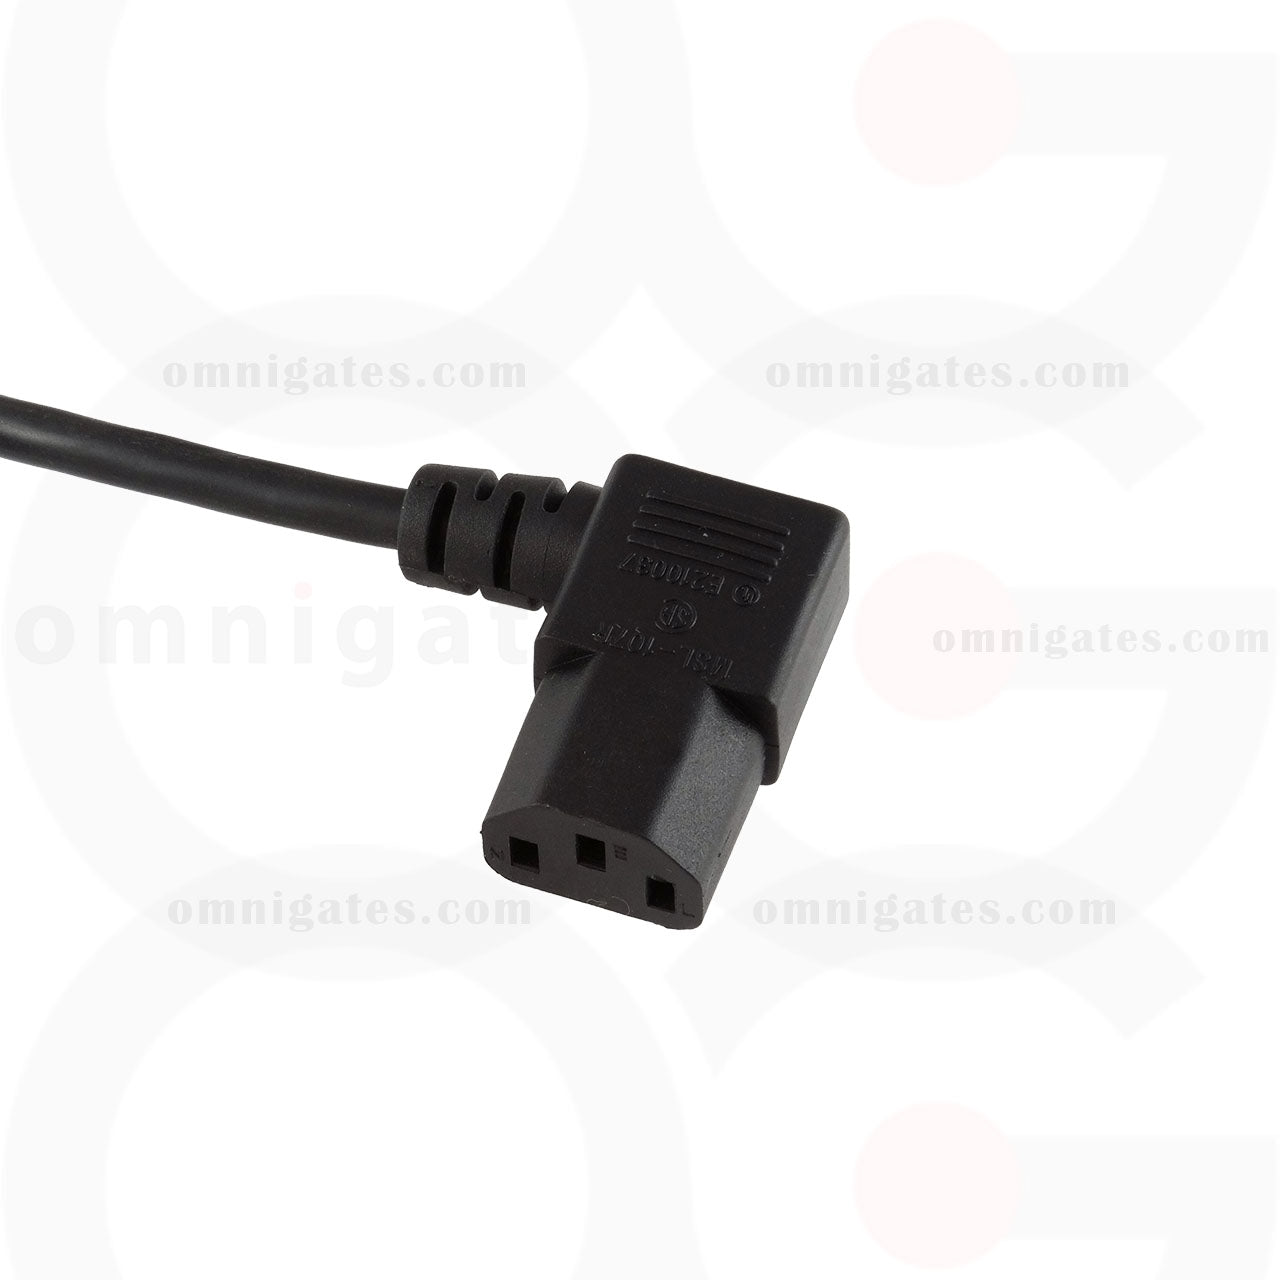 2x 1FT NEMA 5-15P To IEC320 C13 PC Power Cord Cable 3-Prong US AC 10A 125V 18AWG